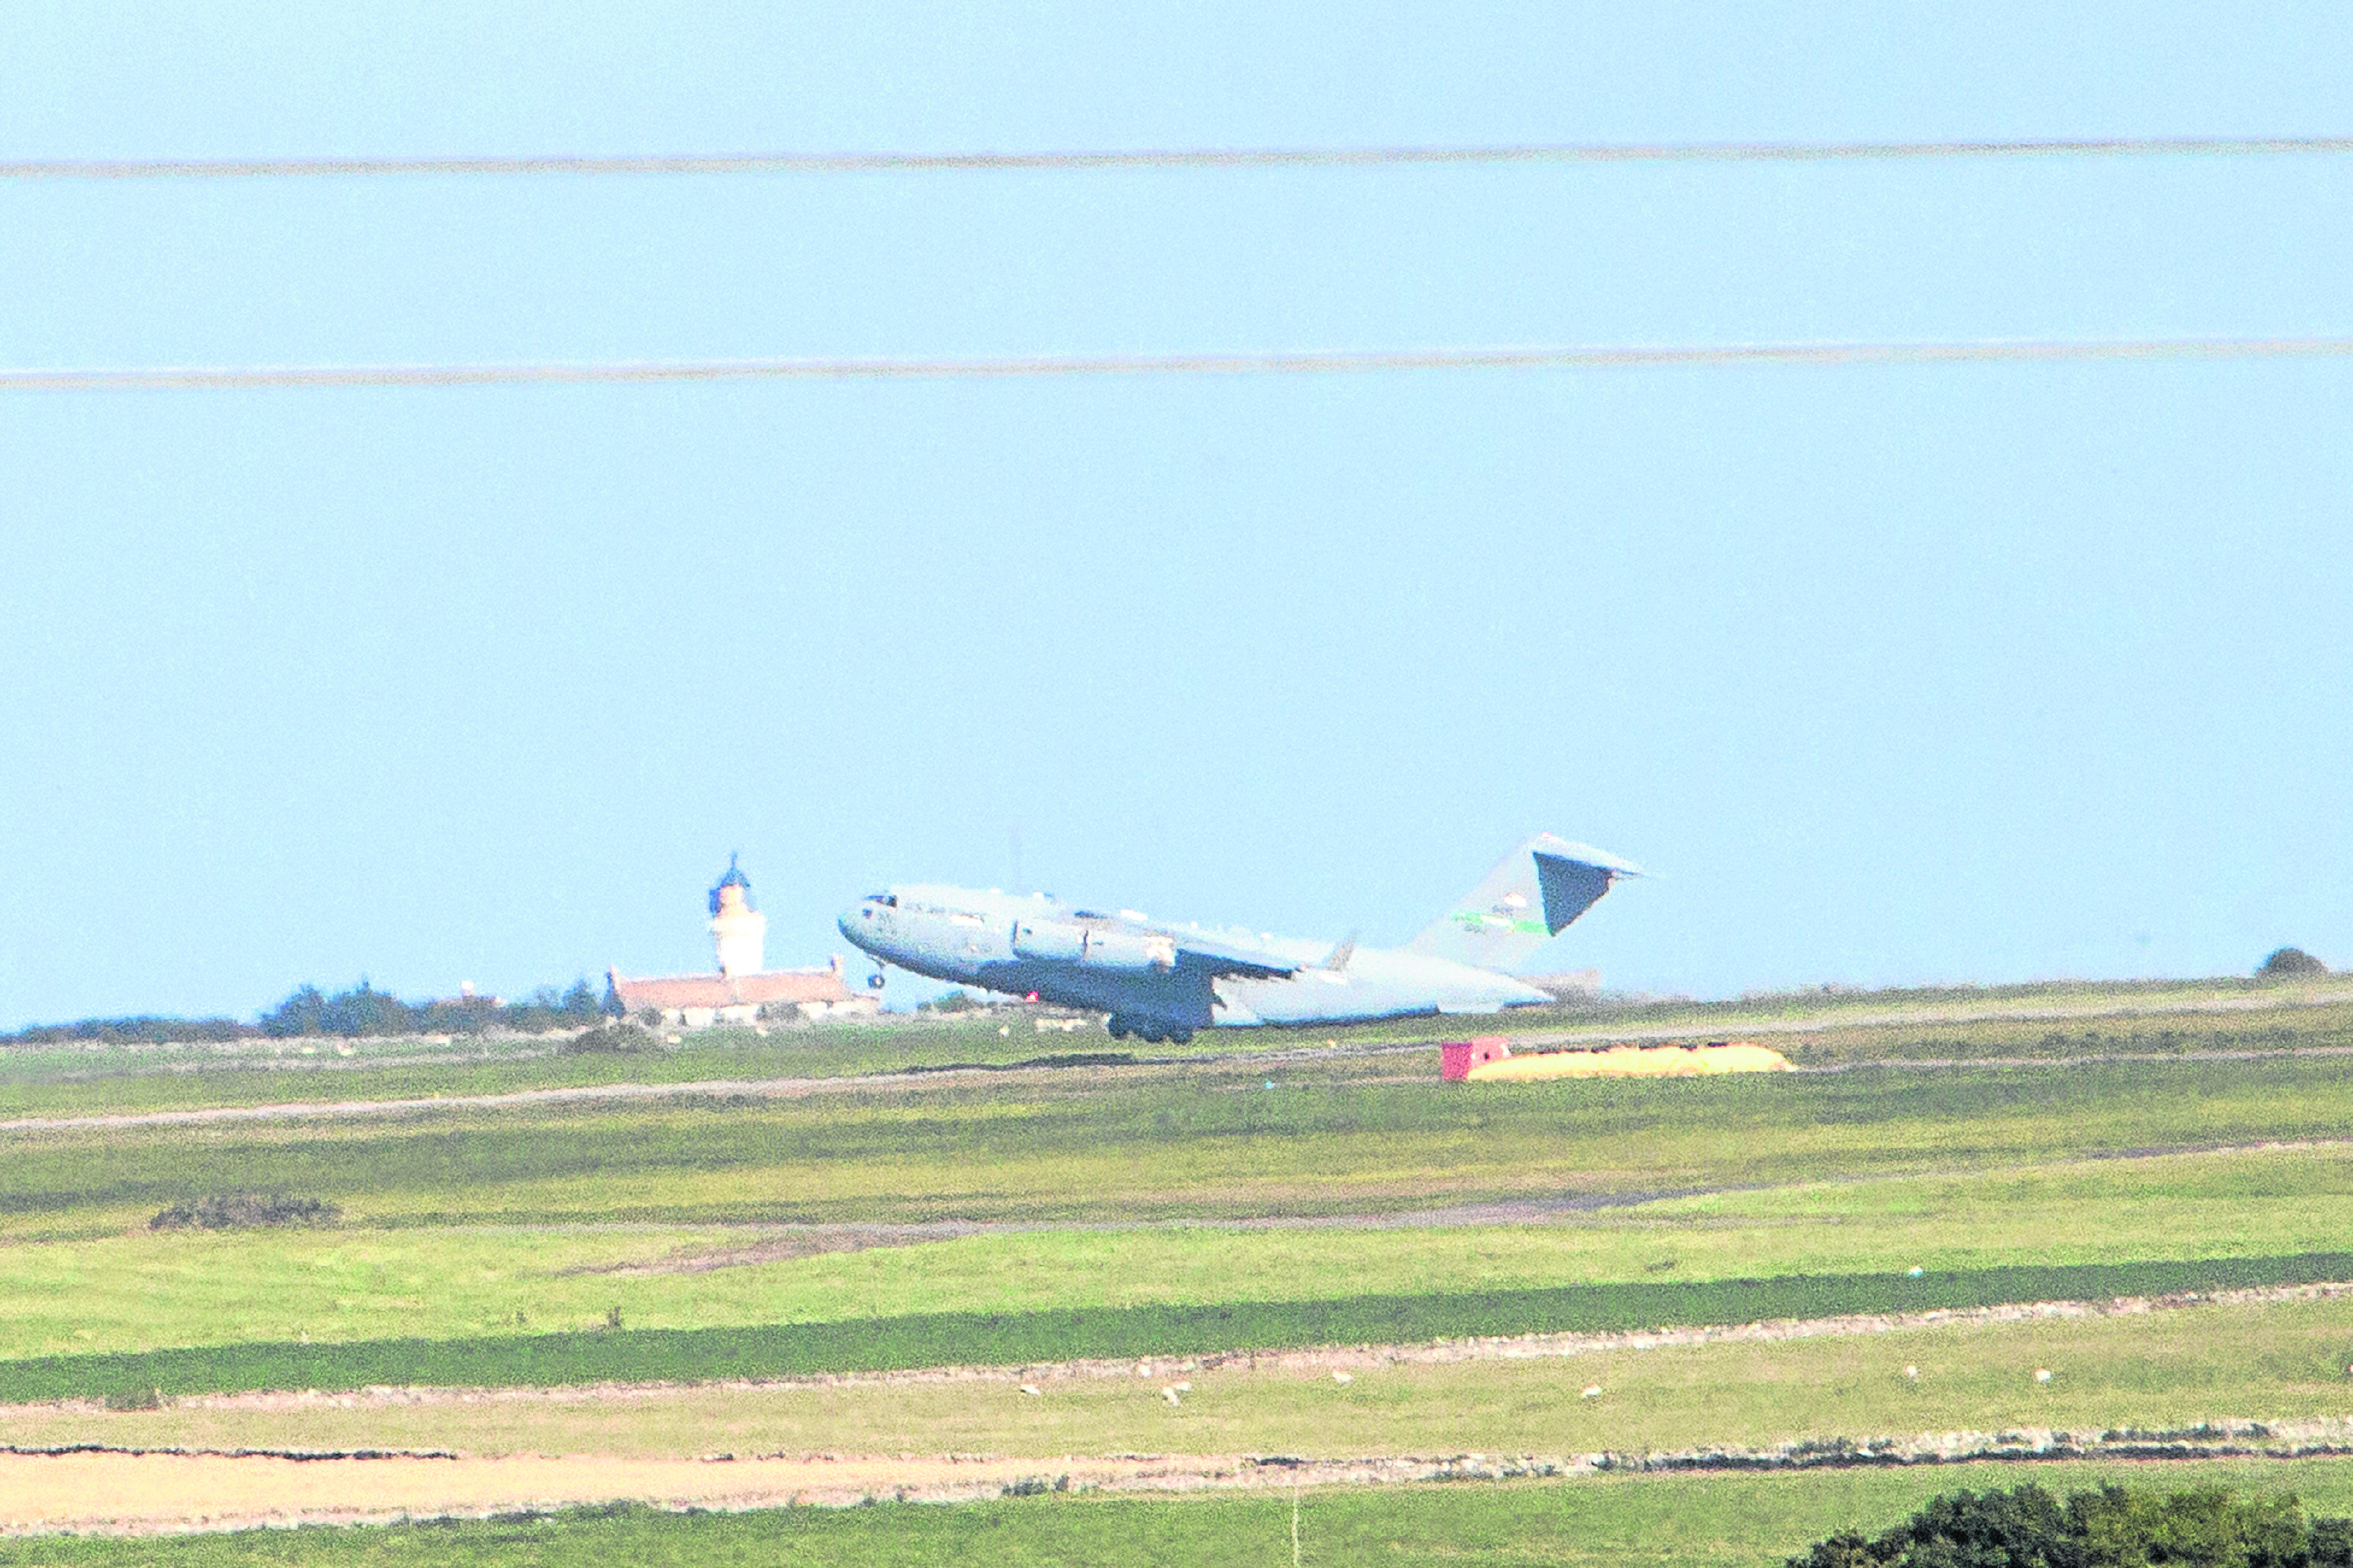 The United States Air Force C-17 Globemaster takes off from Wick's airport